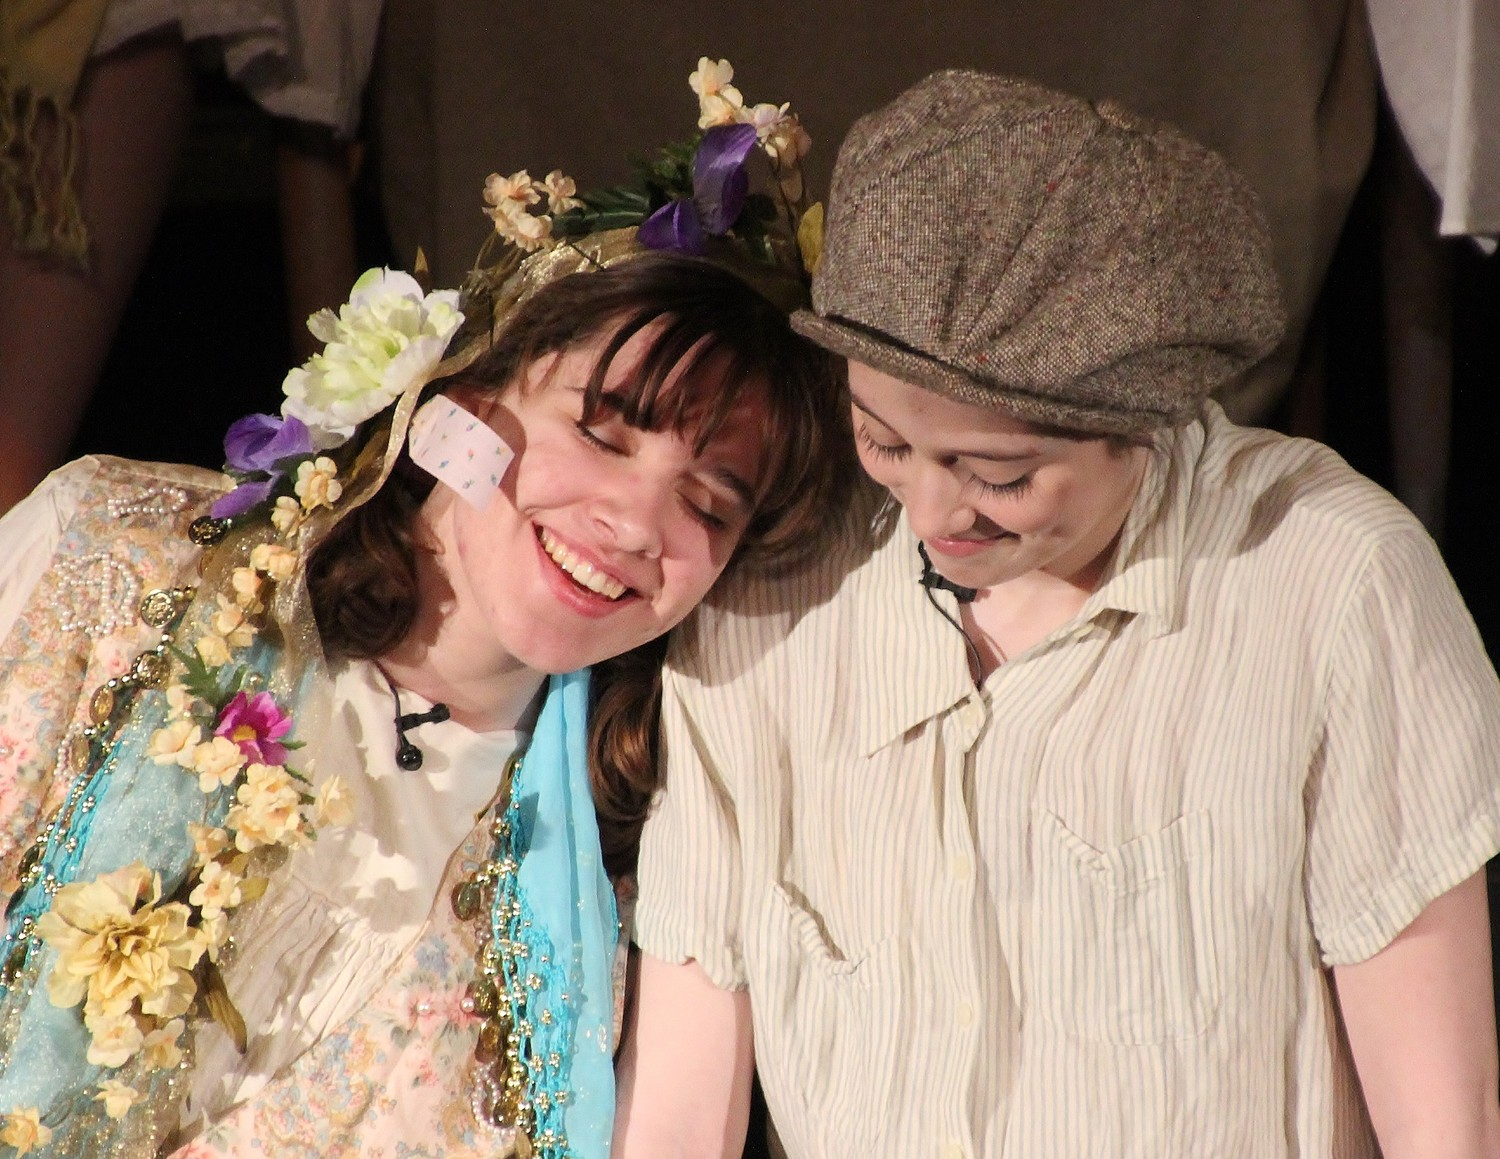 Abby Dawson of Riverside as Sudha the Flower Girl, and Grace Farrow as Amal.